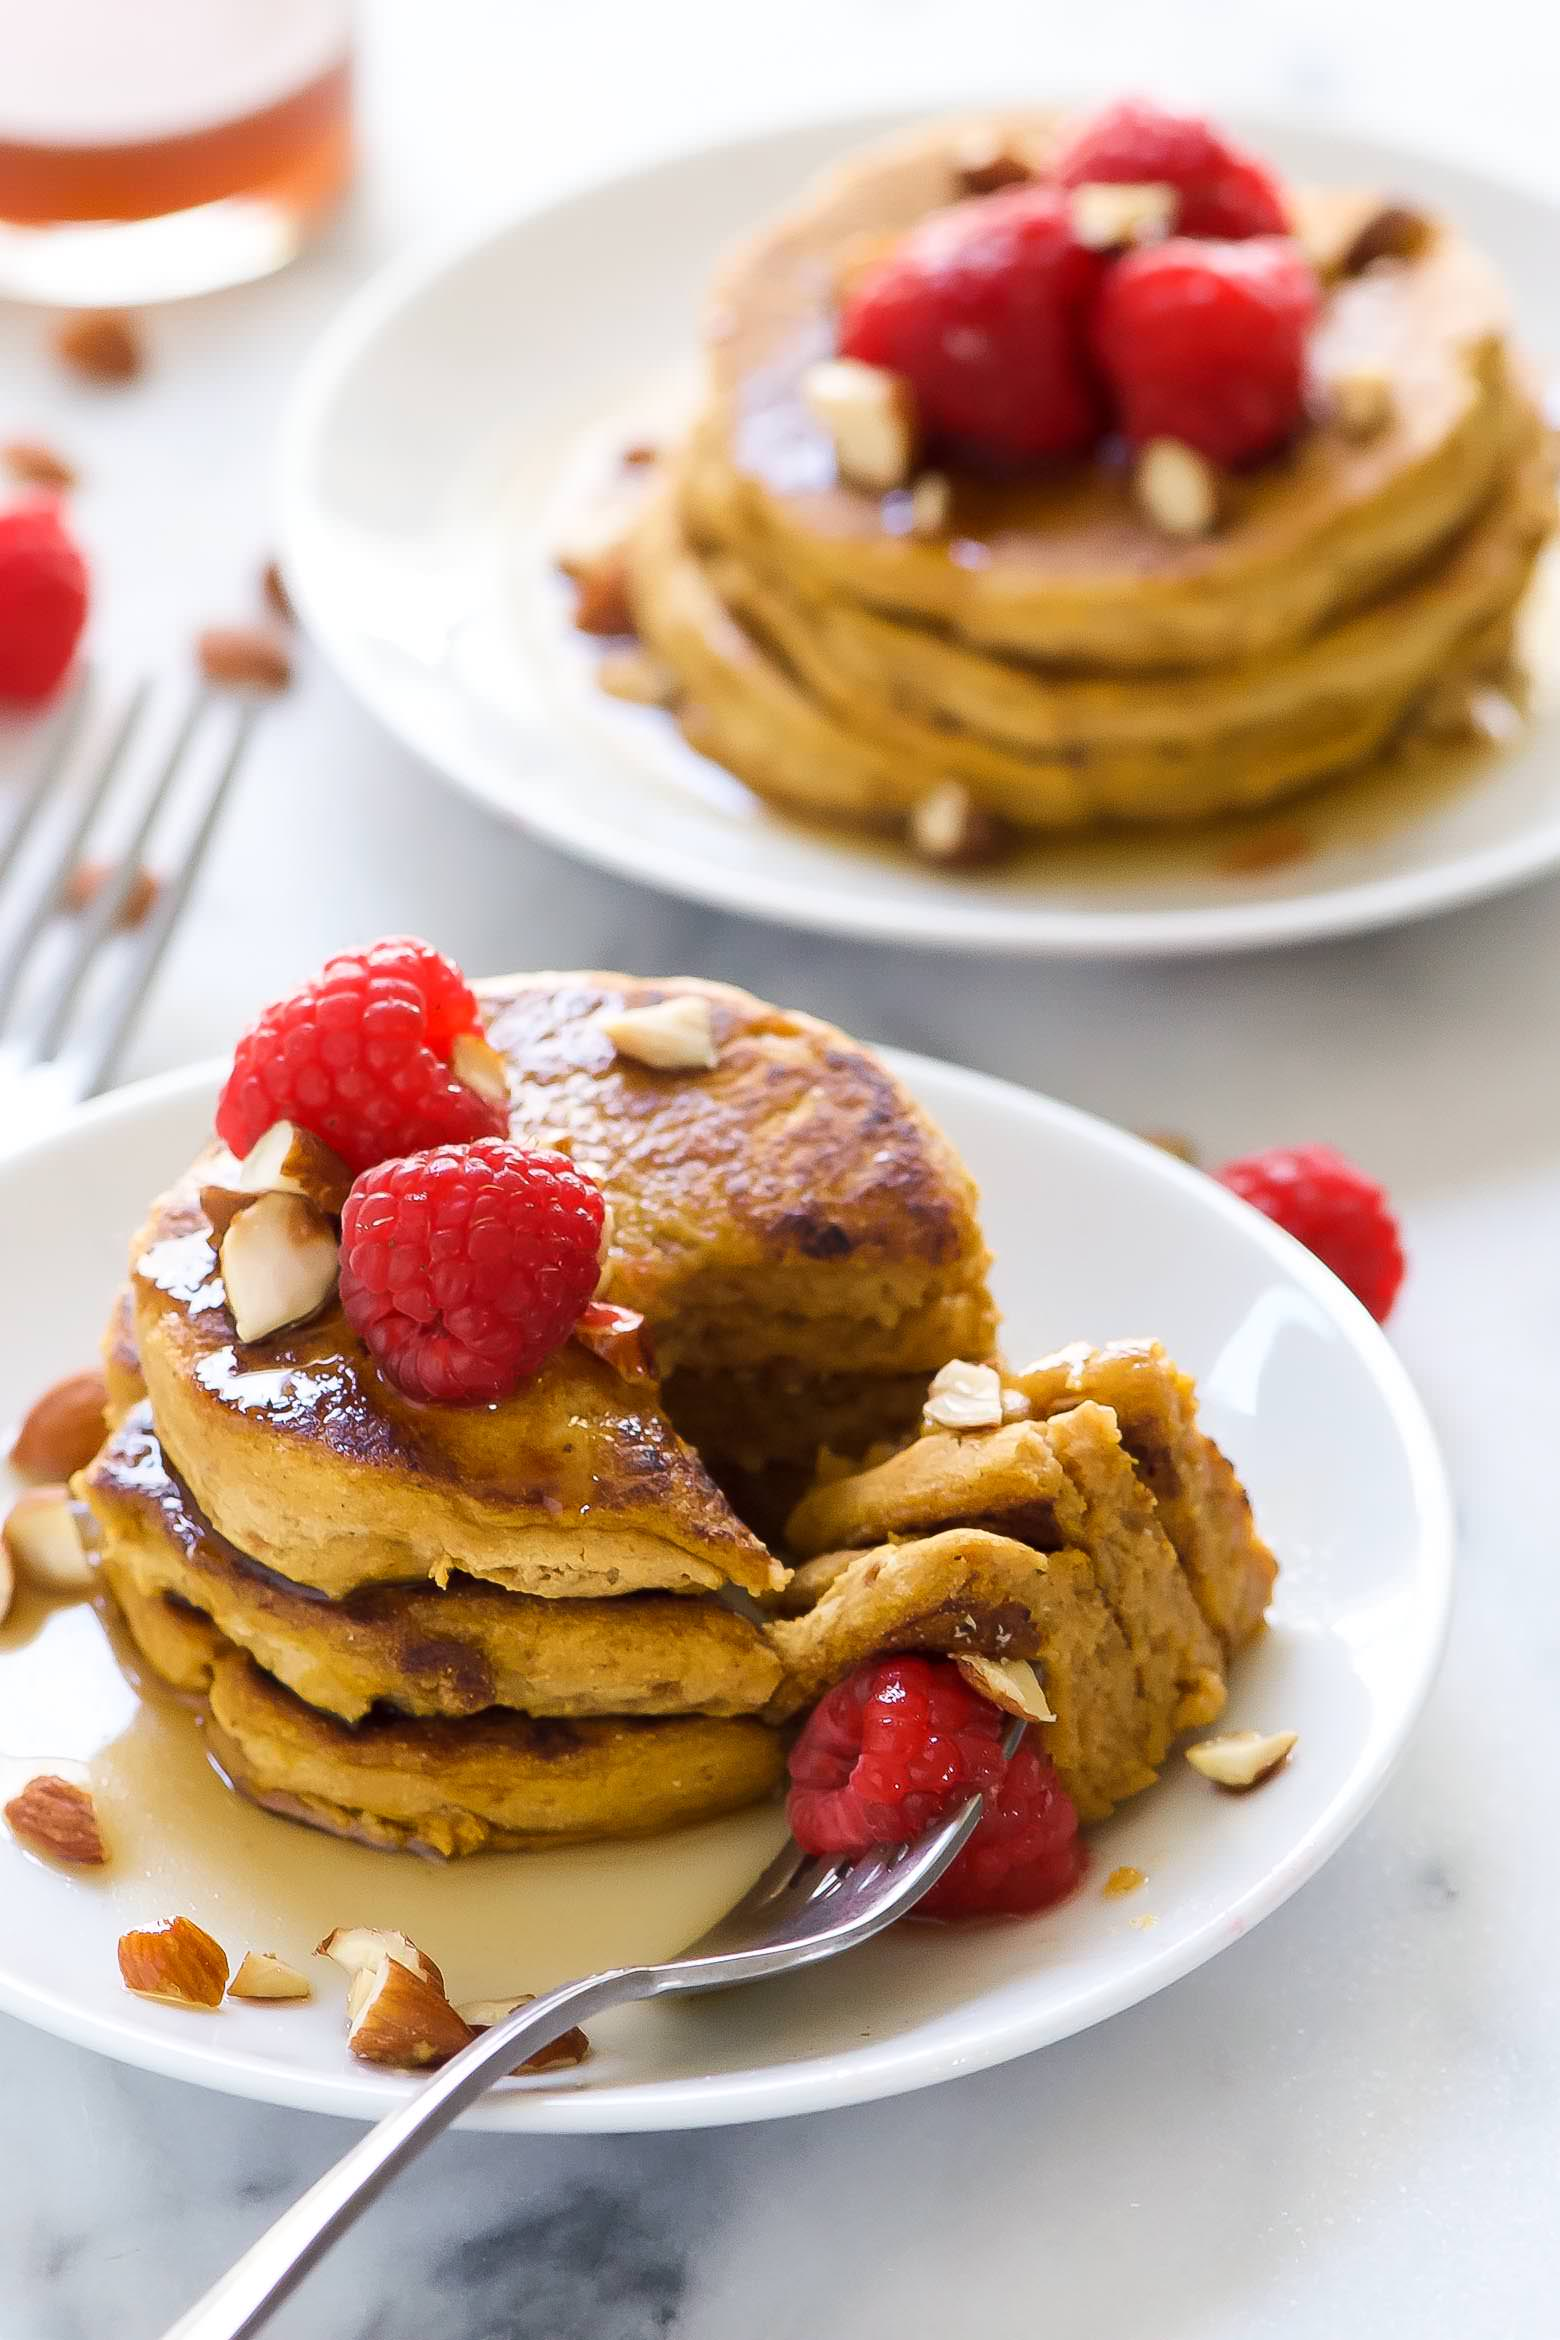 Gluten Free Pumpkin Pancakes are filled with fall flavors! They are super fluffy, have a touch of sweetness and finished with a warm coconut maple syrup! The ideal fall breakfast!